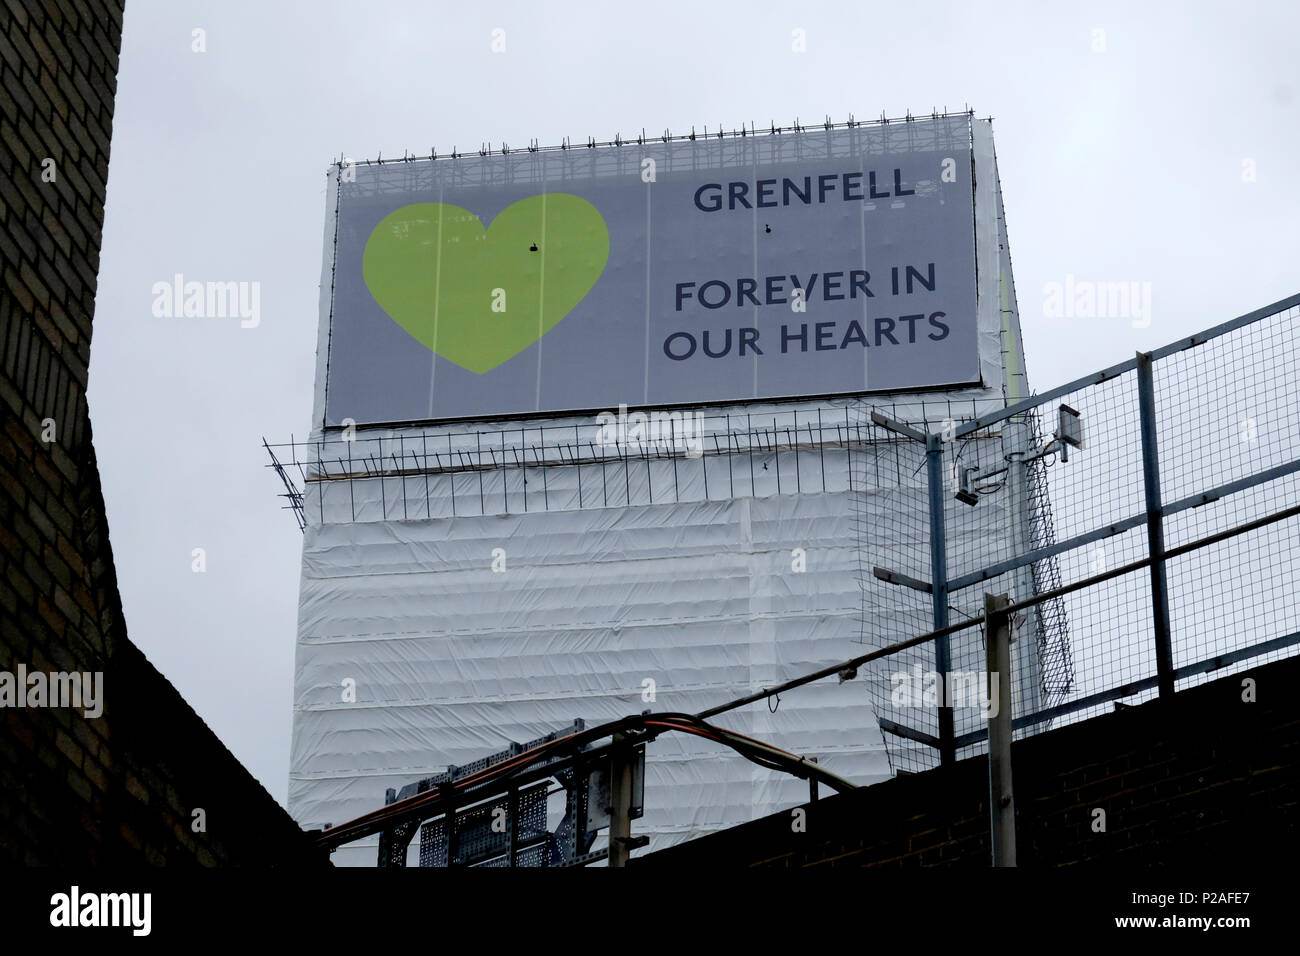 London, UK, 14th June 2018. Many events are held in south Kensington to mark the anniversary of Grenfell tower tragedy. Credit: Yanice Idir / Alamy Live News Stock Photo